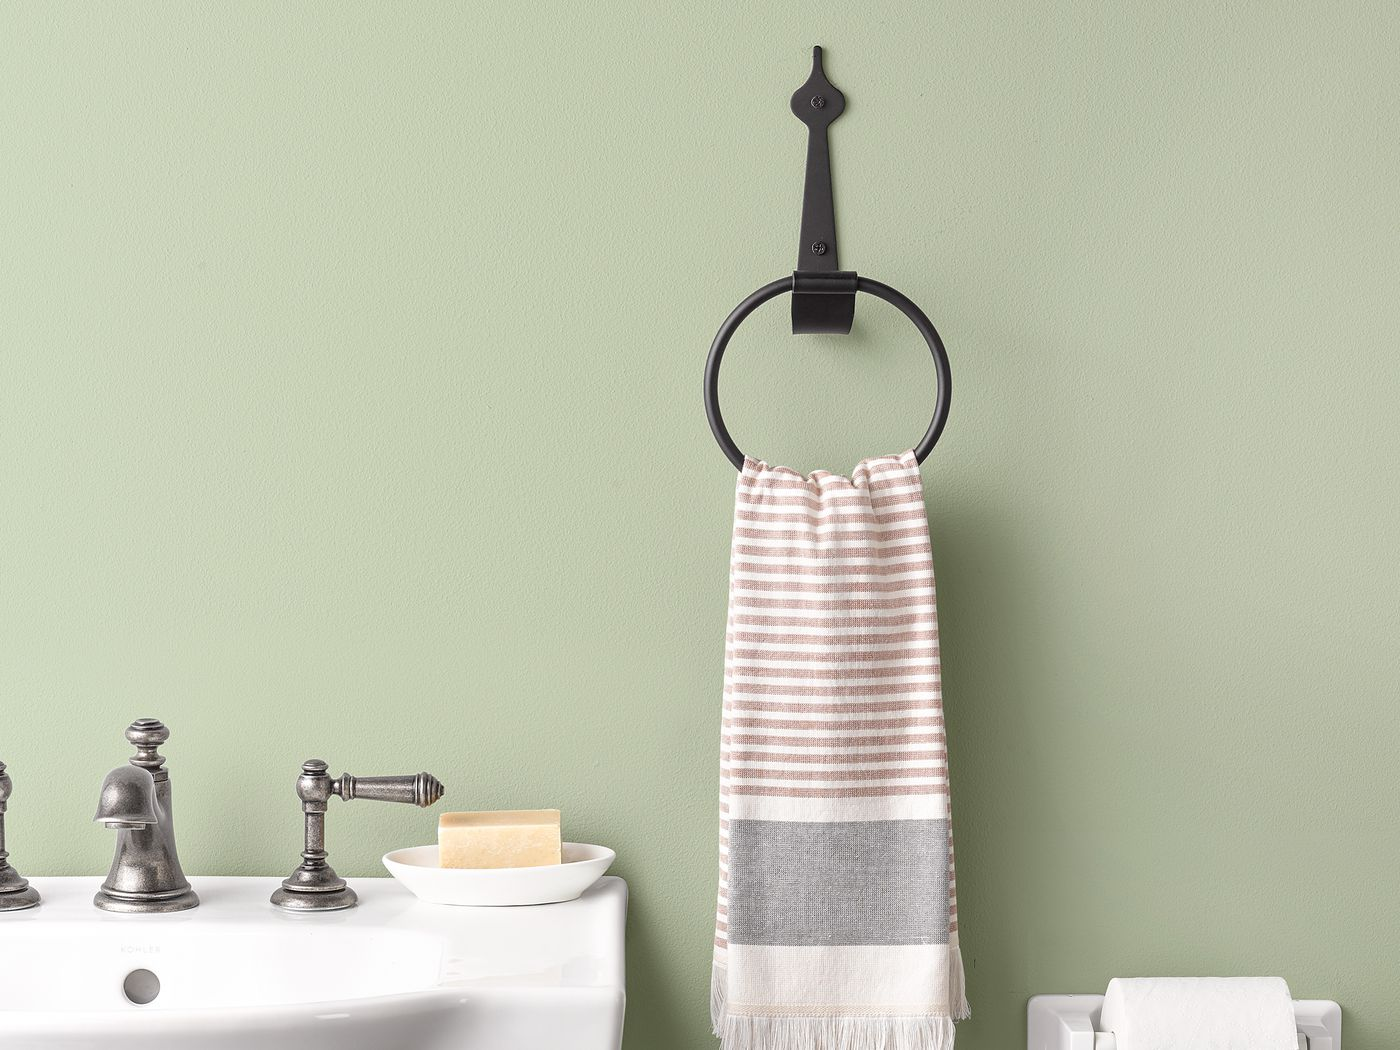 Towel Rings This Old House